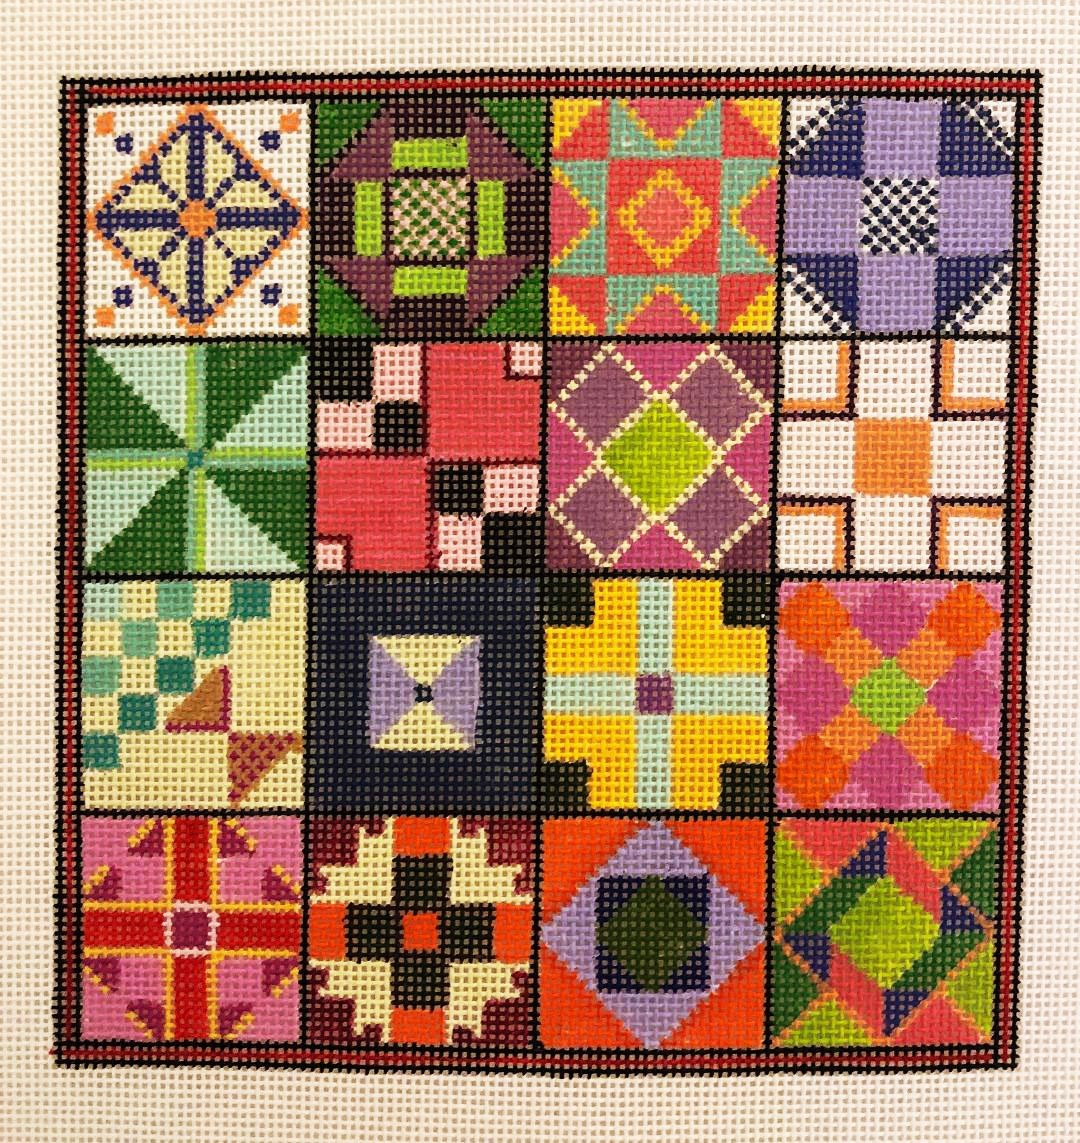 Quilt Squares and Pinwheels